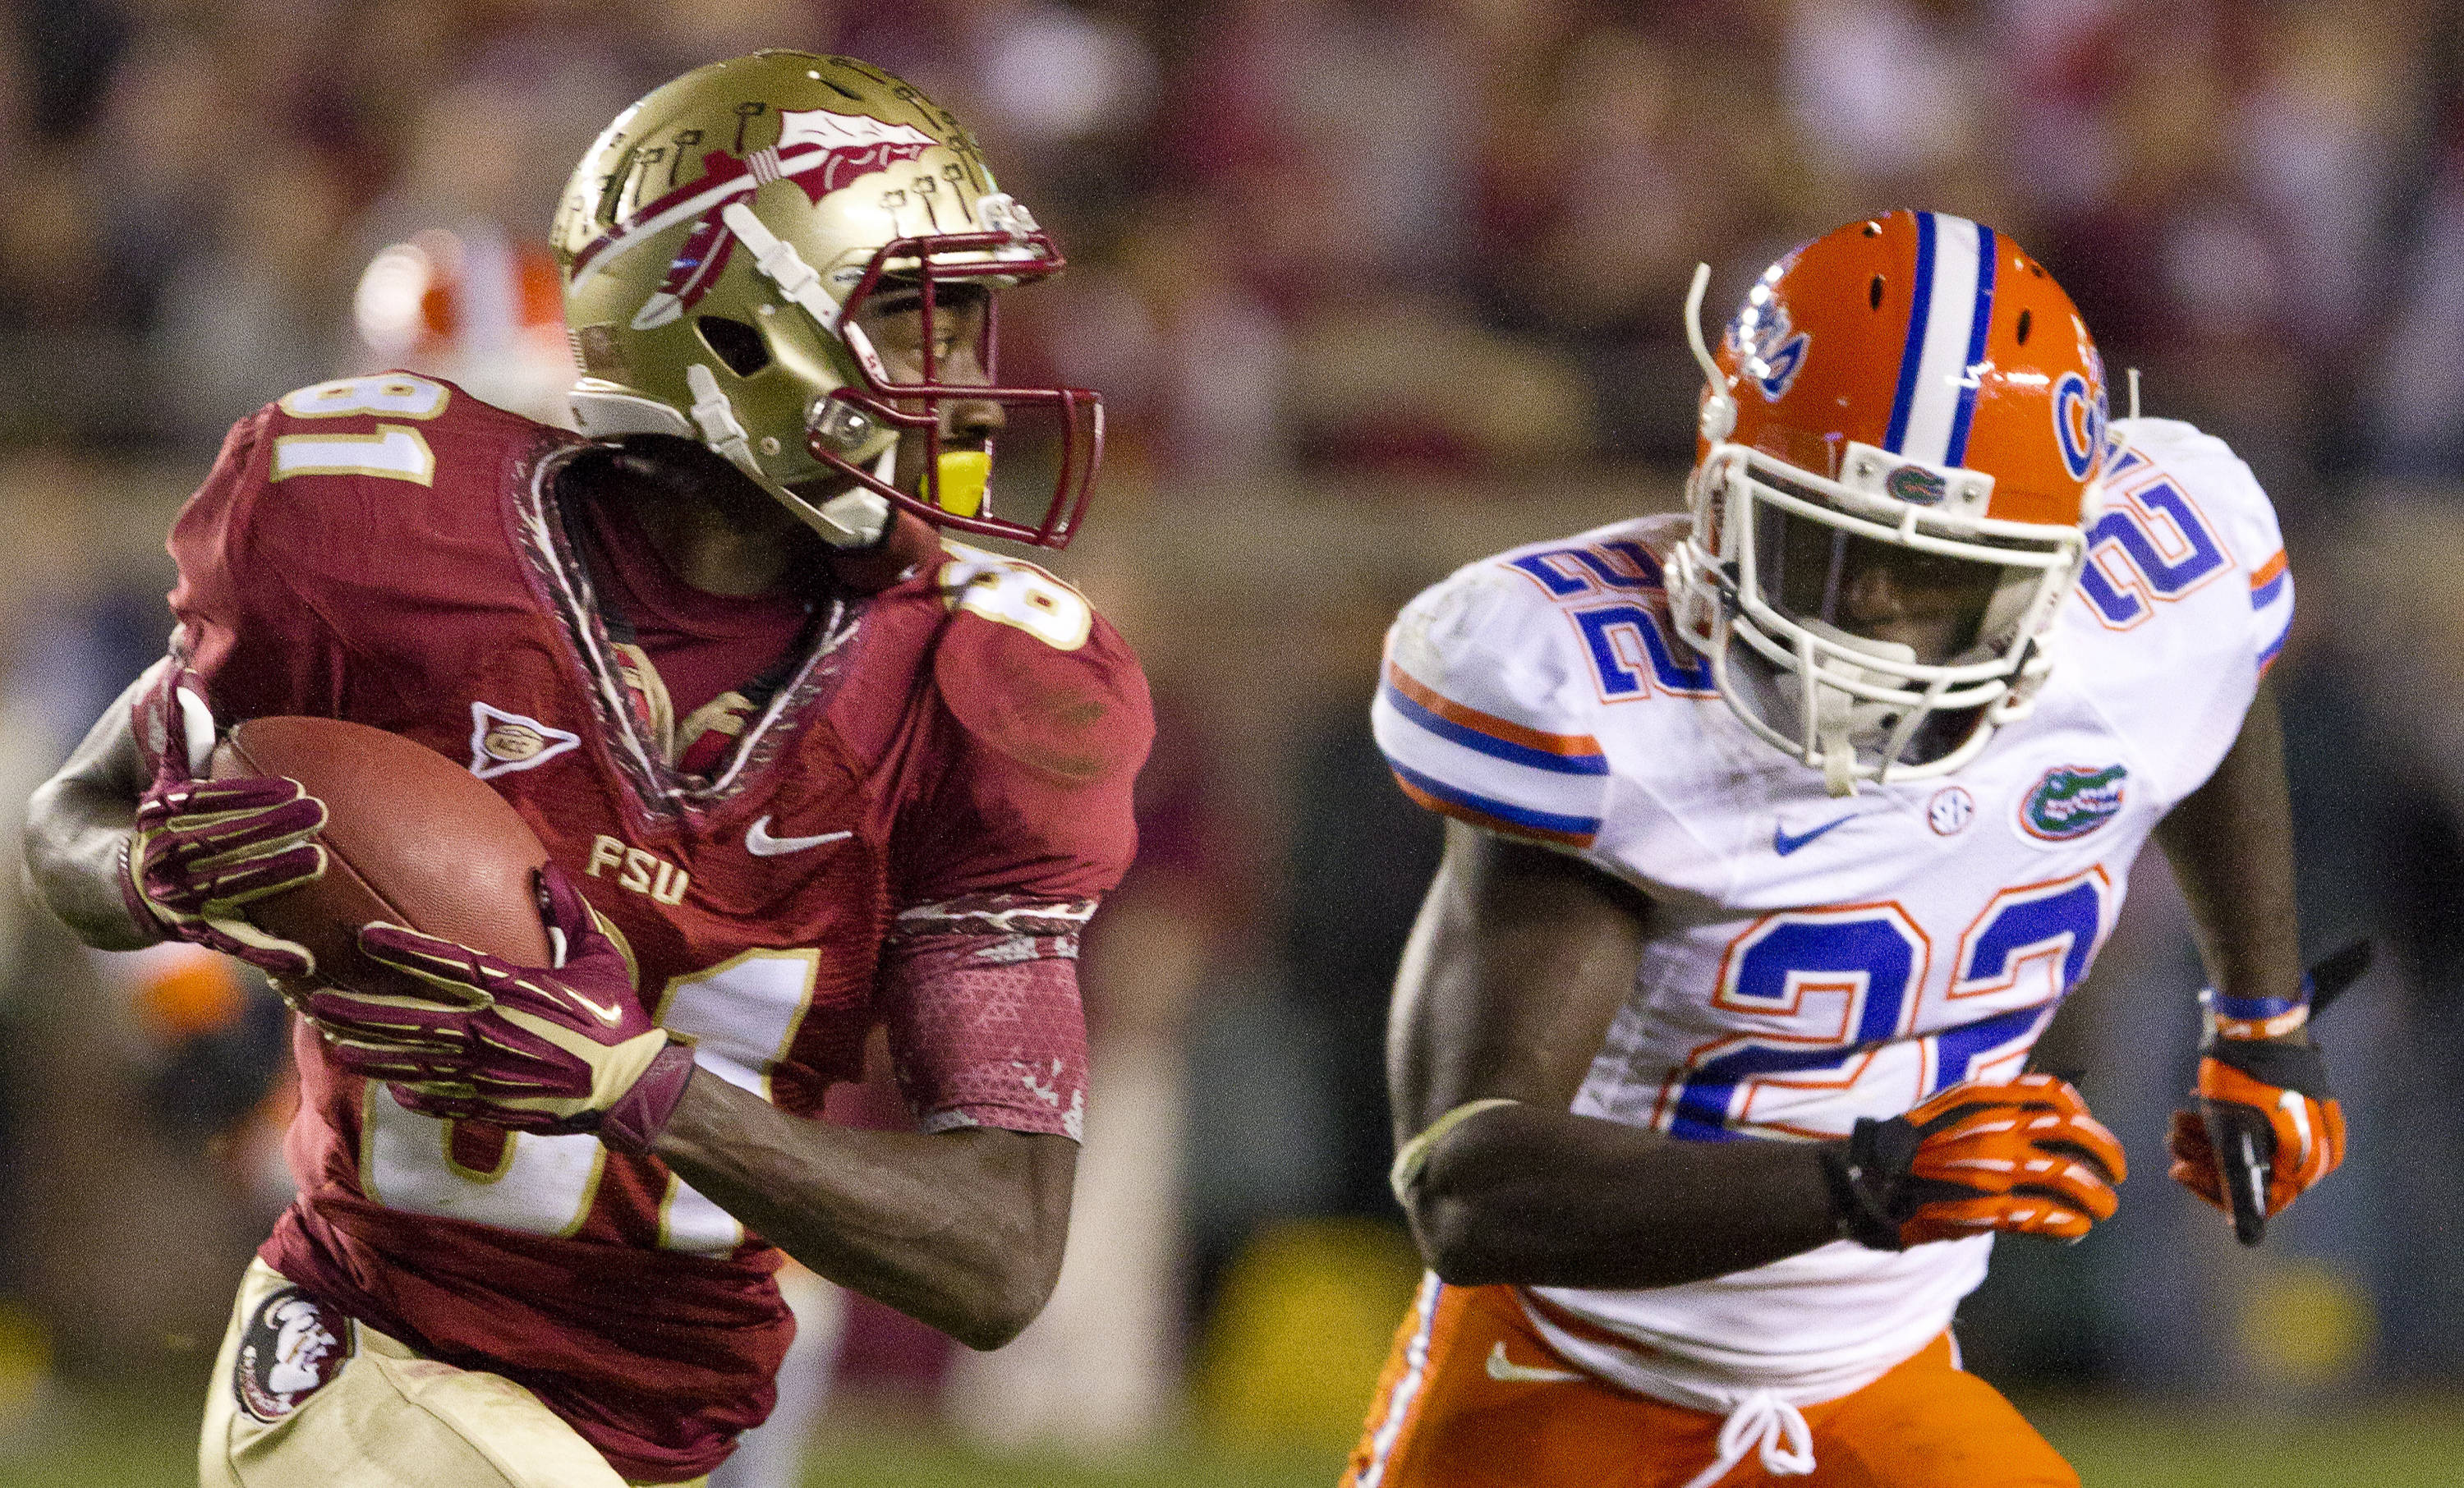 Kenny Shaw (81) carries the ball during FSU Football's game against UF on Saturday, November 24, 2012 in Tallahassee, Fla.